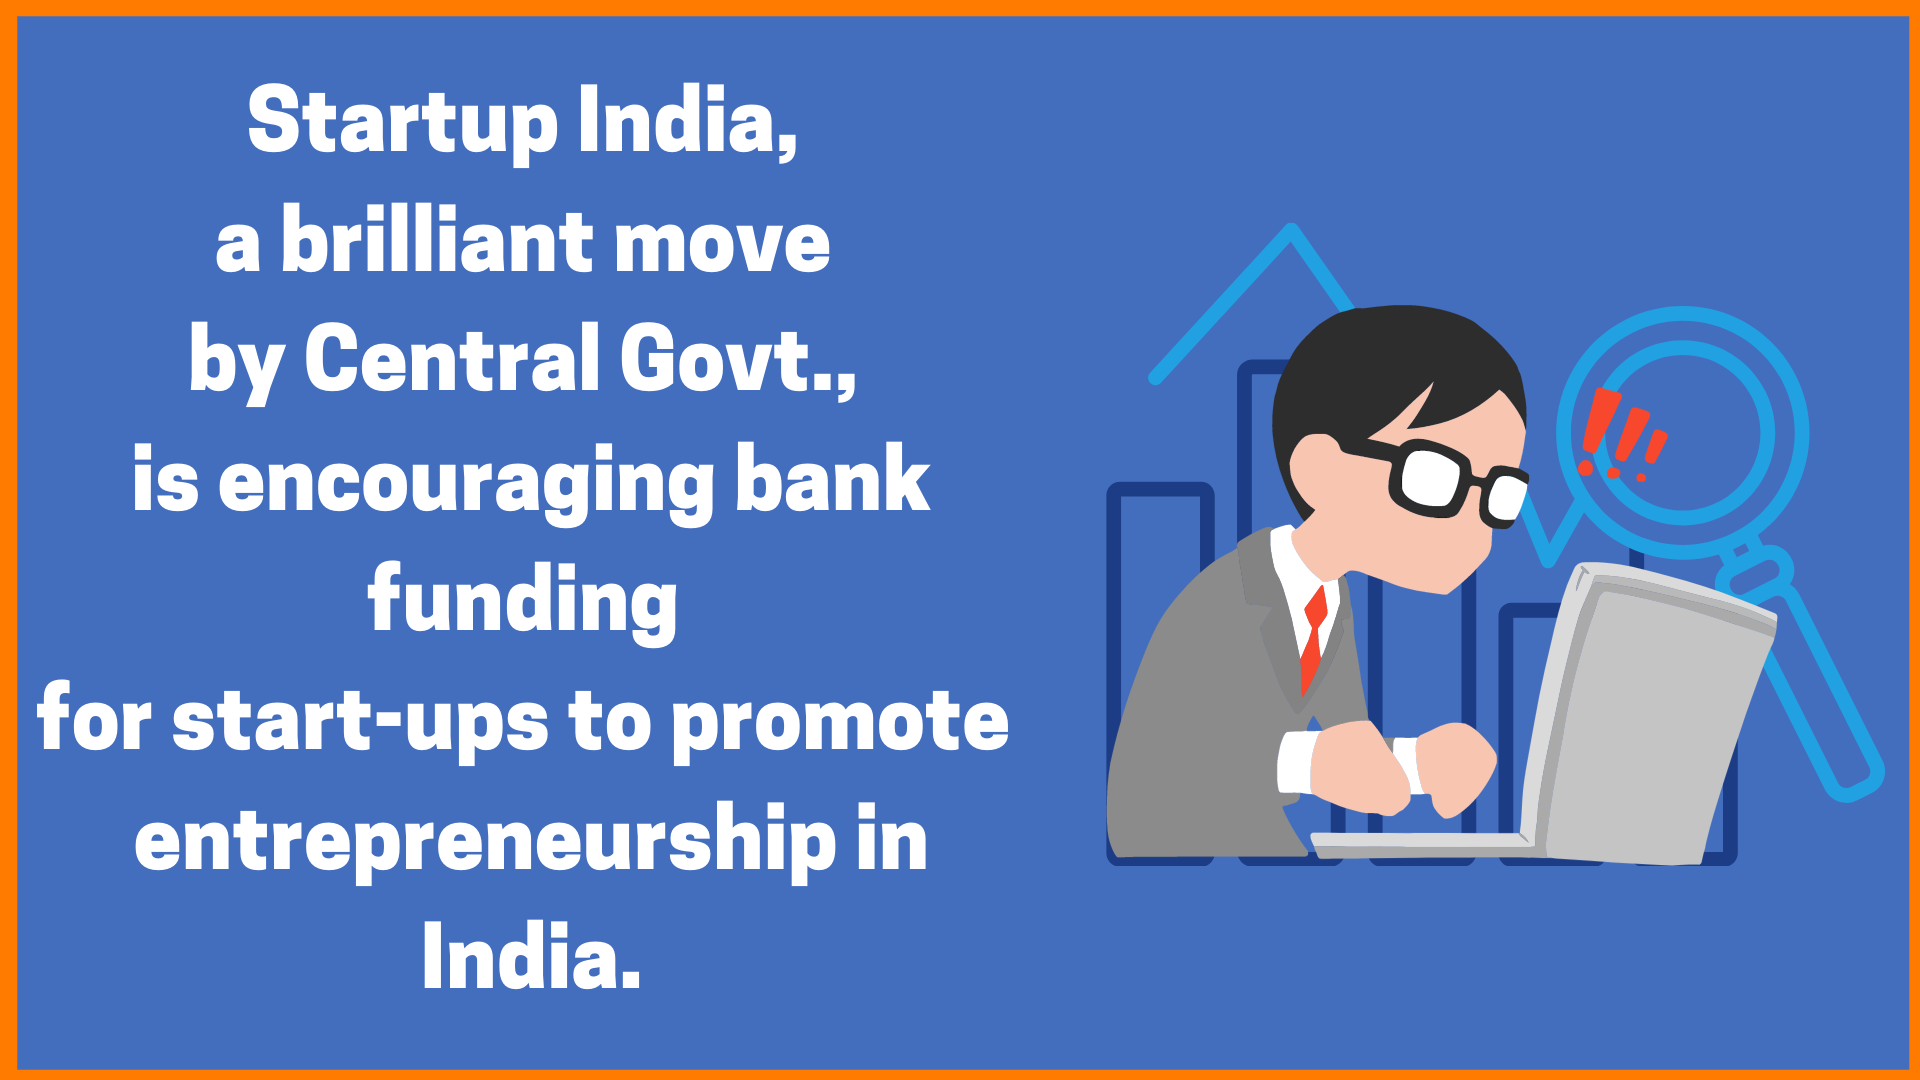 Startup Loan Initiated by the Government